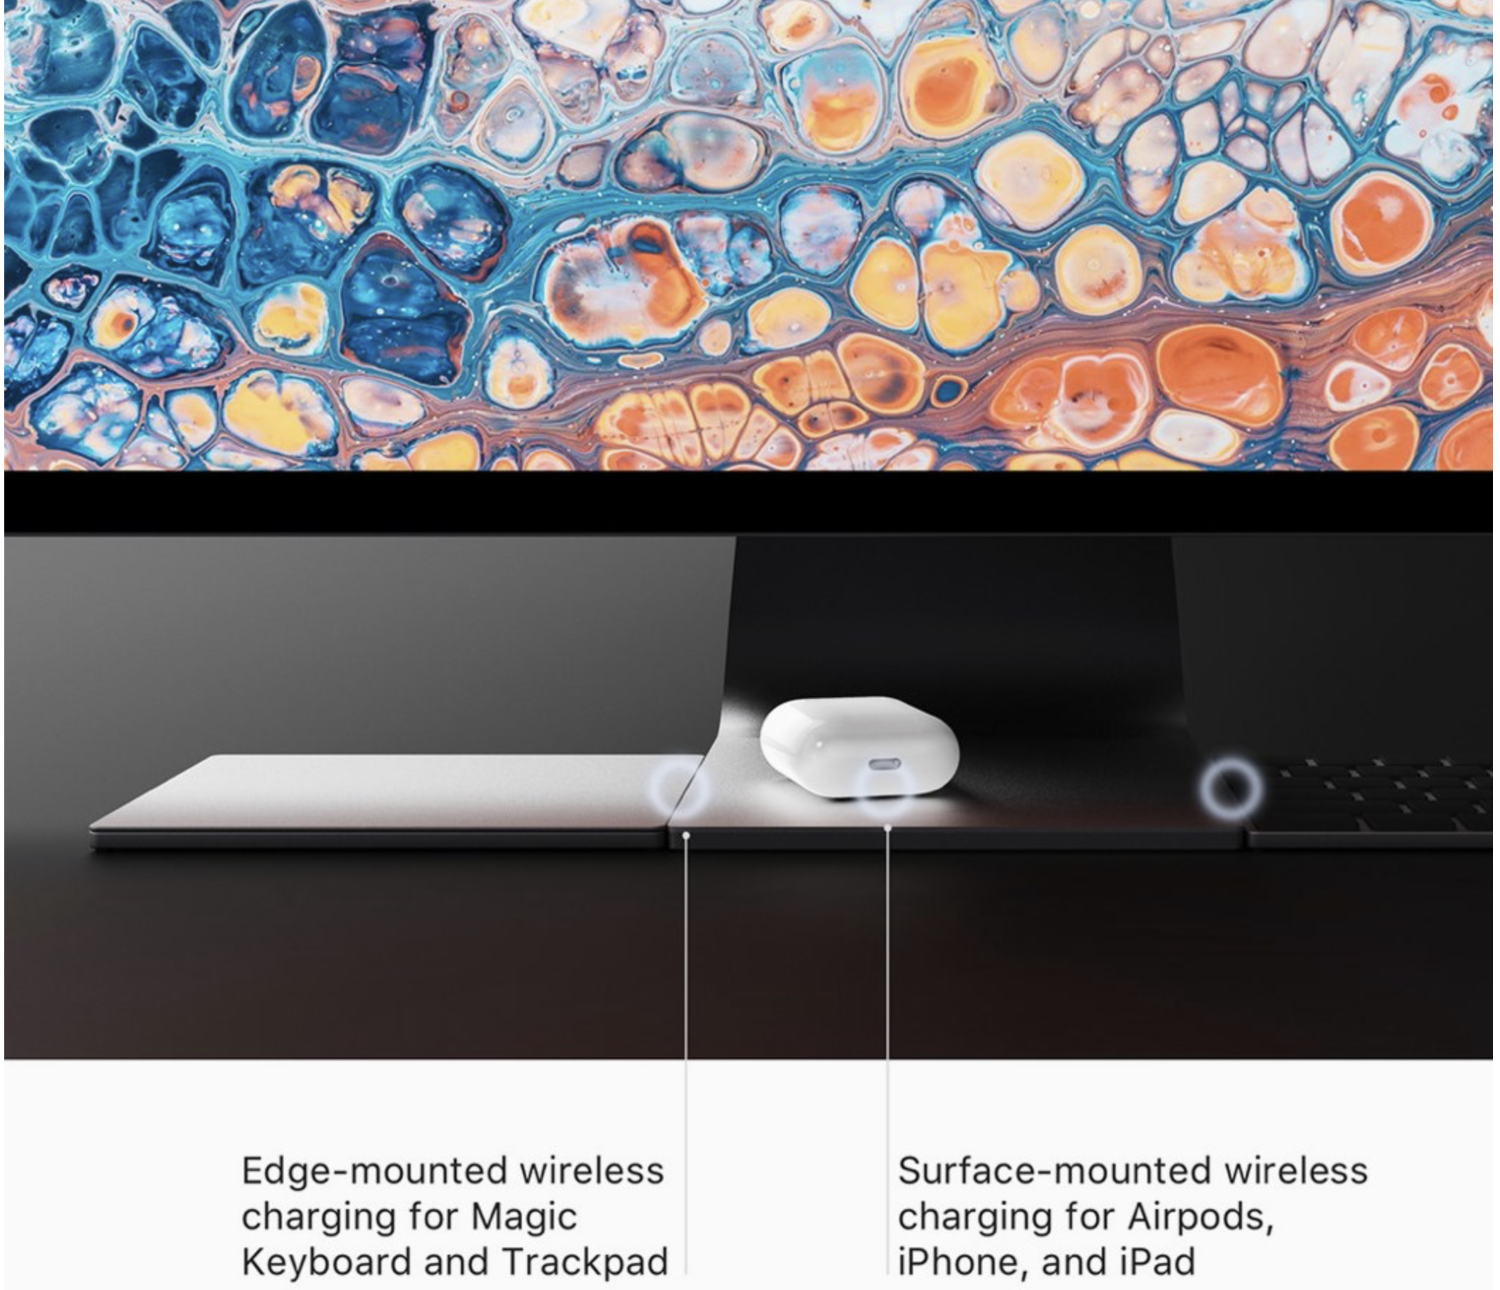 New Imac 2020.This Is The Imac Design I Want In 2020 If Not Sooner